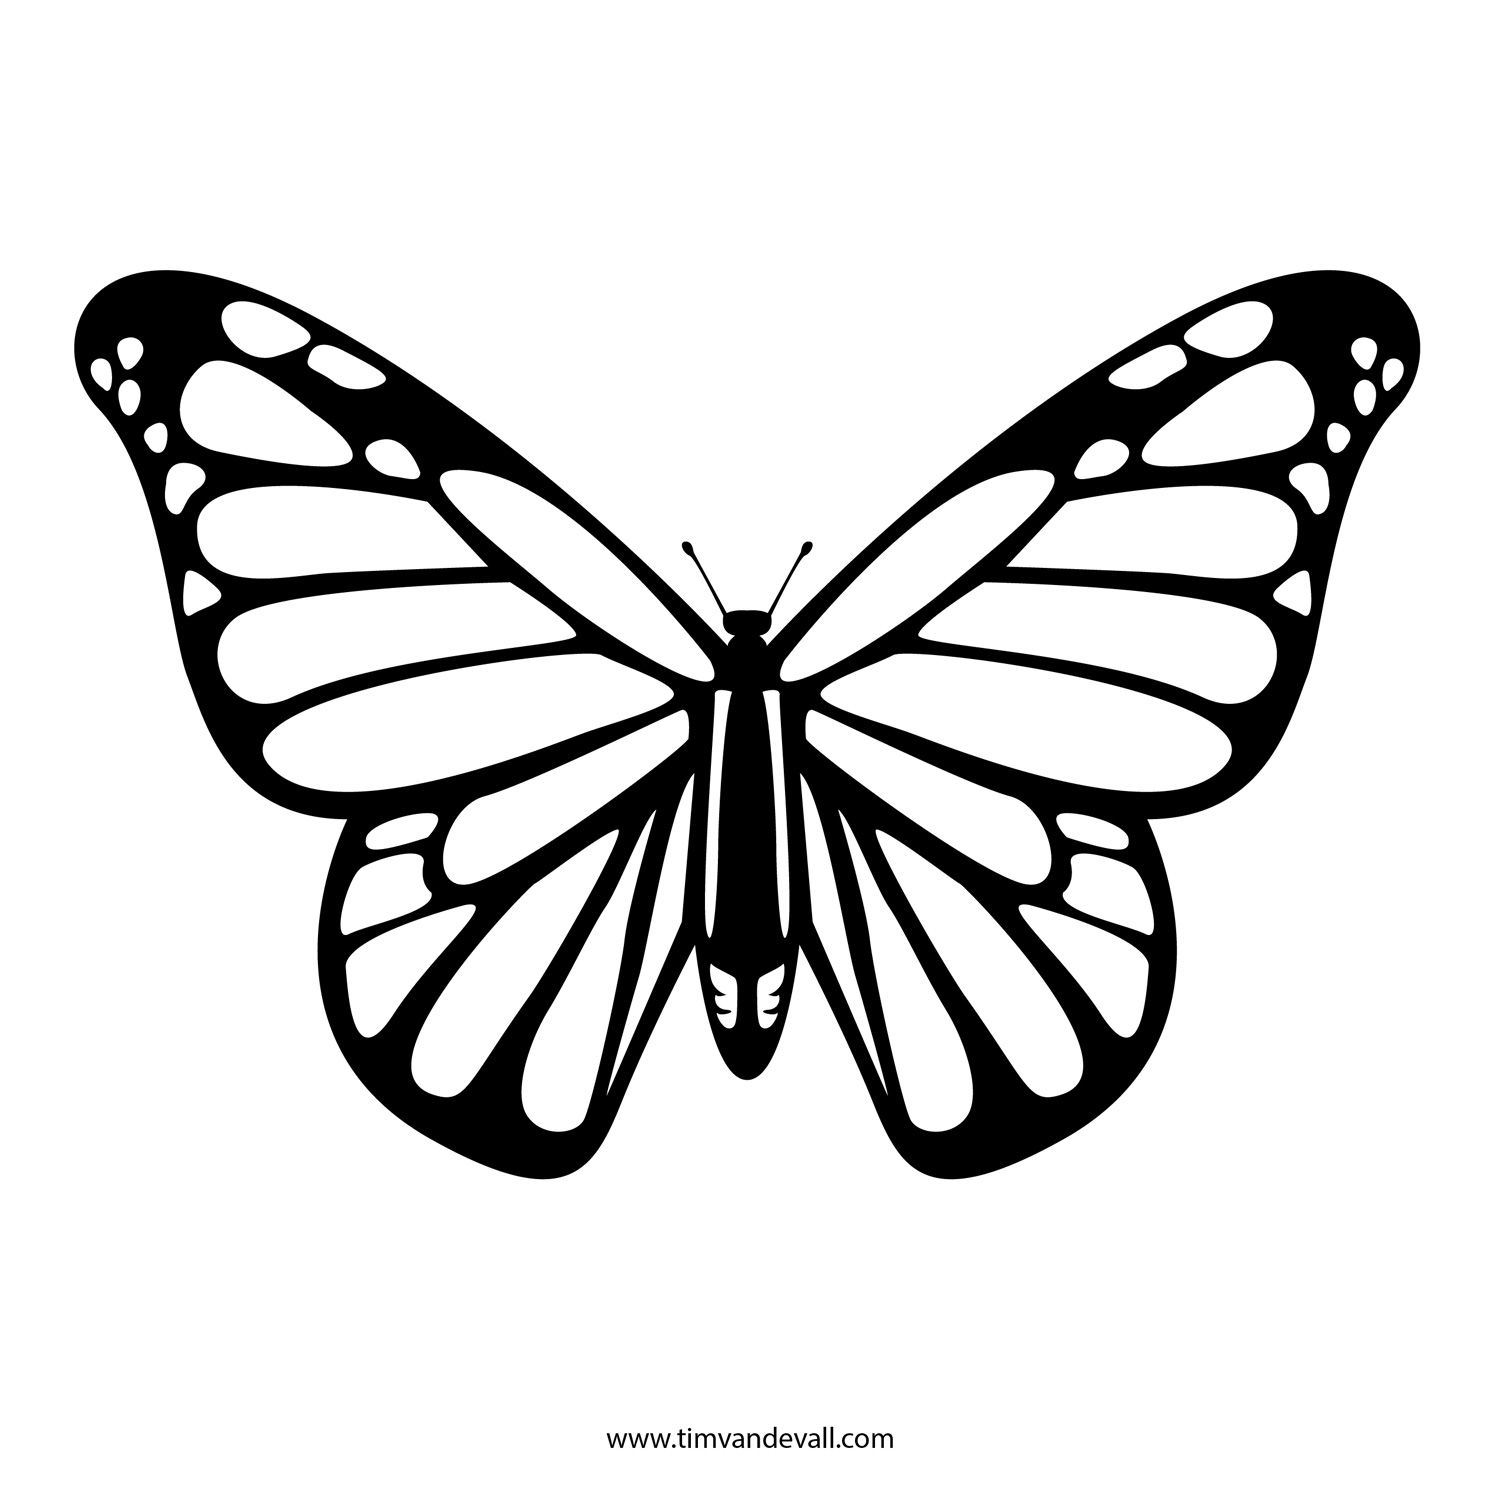 free butterfly stencil monarch butterfly outline and silhouette - Free Kids Stencils